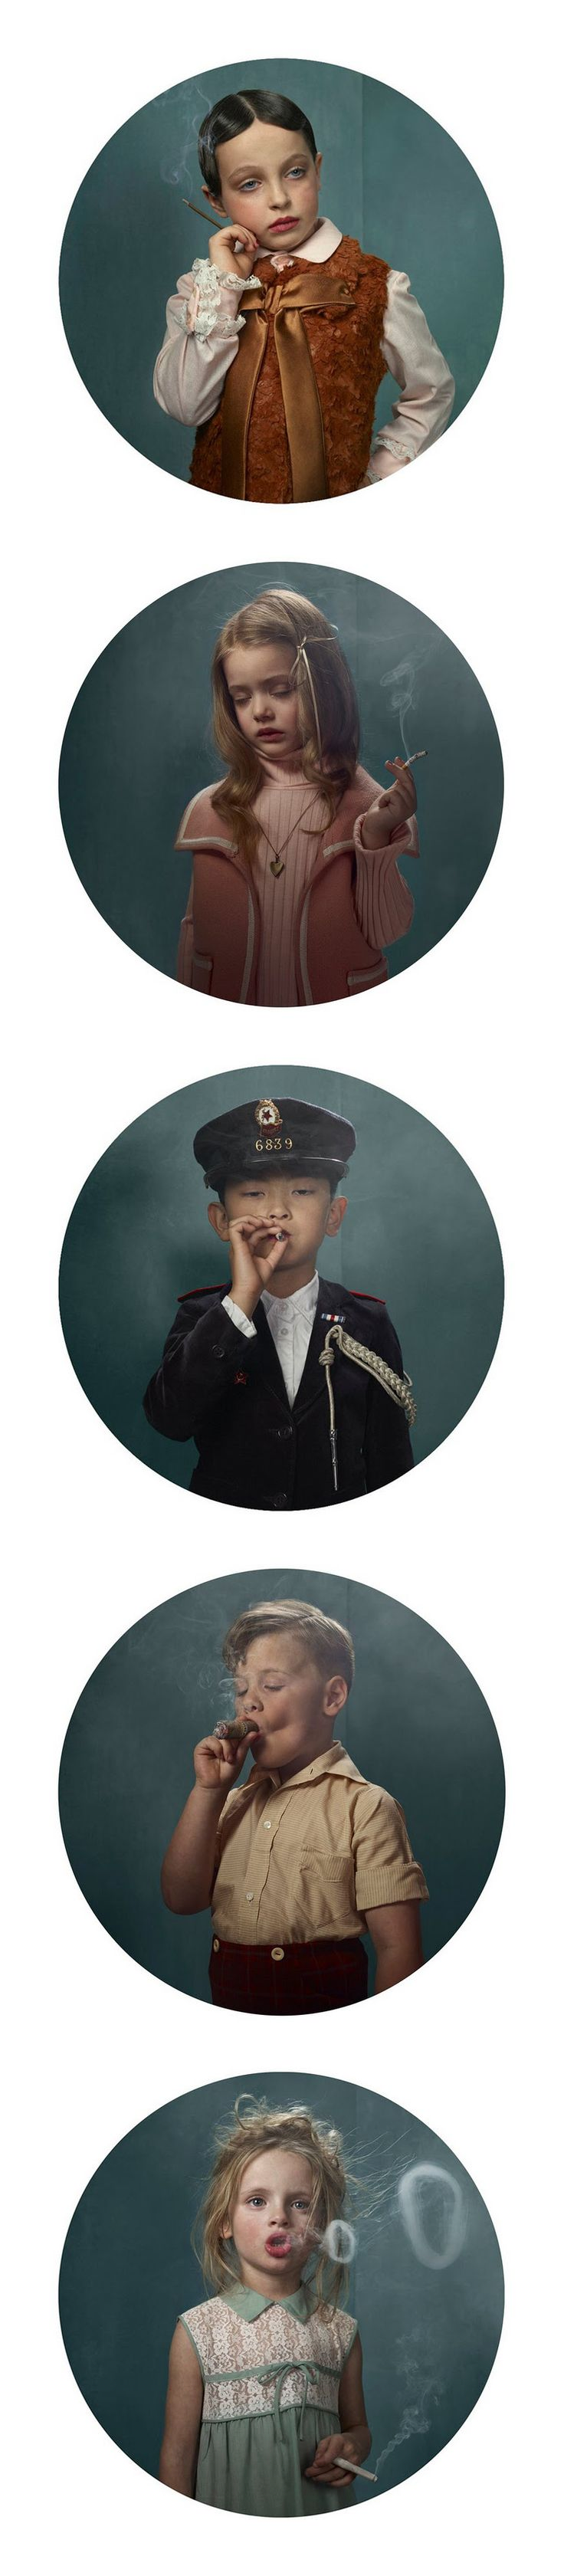 Smoking Kids by Frieke Janssens Monday November 28, 2011 There is definitely a bit of sense of humor in the Smoking Kids series of photograhps by Frieke Janssens.